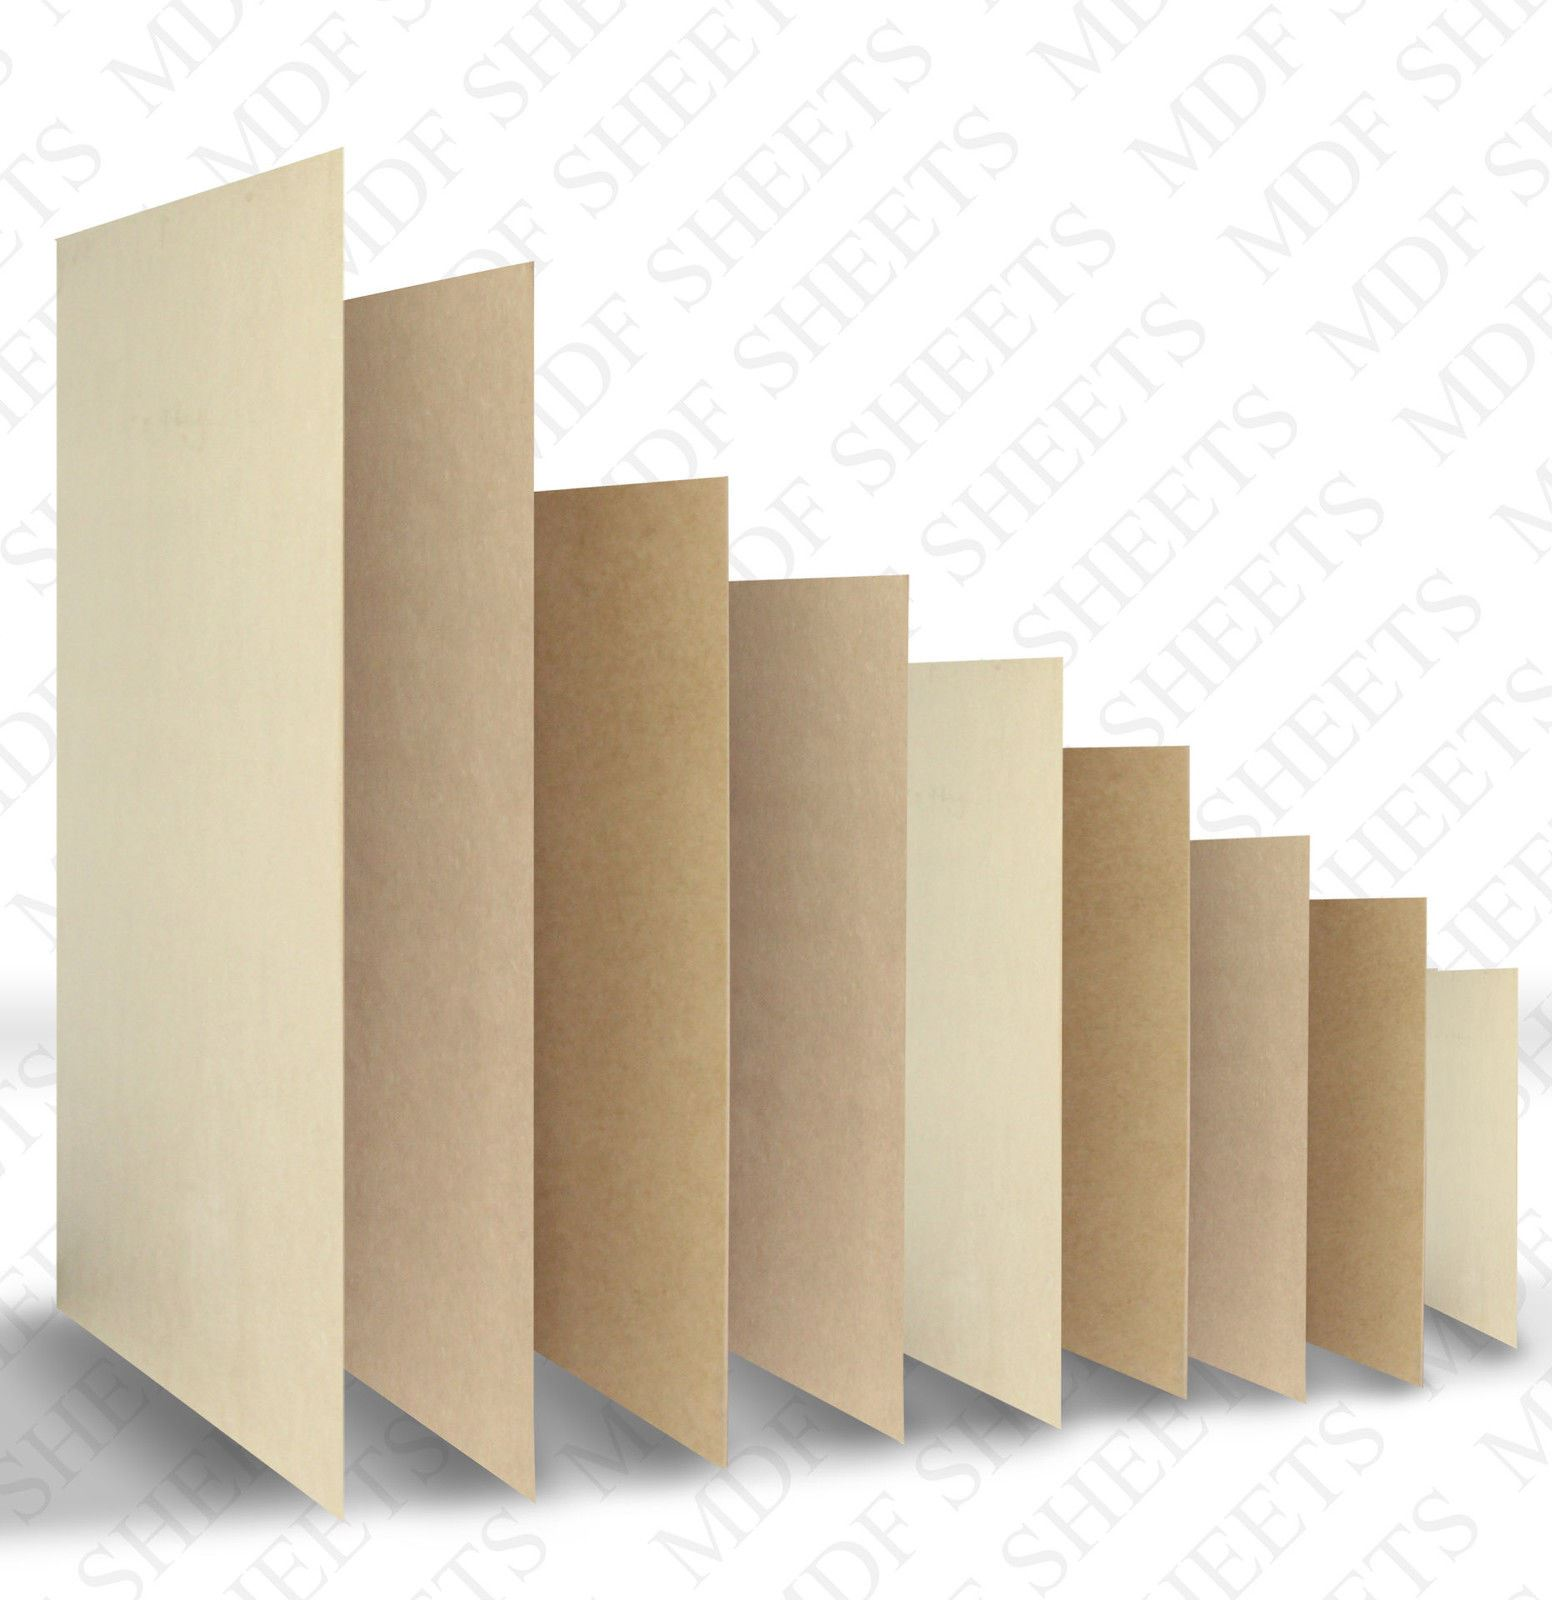 Mdf Sheet Sizes ~ Mdf shhet thickness mm cut craft hobby picture photo